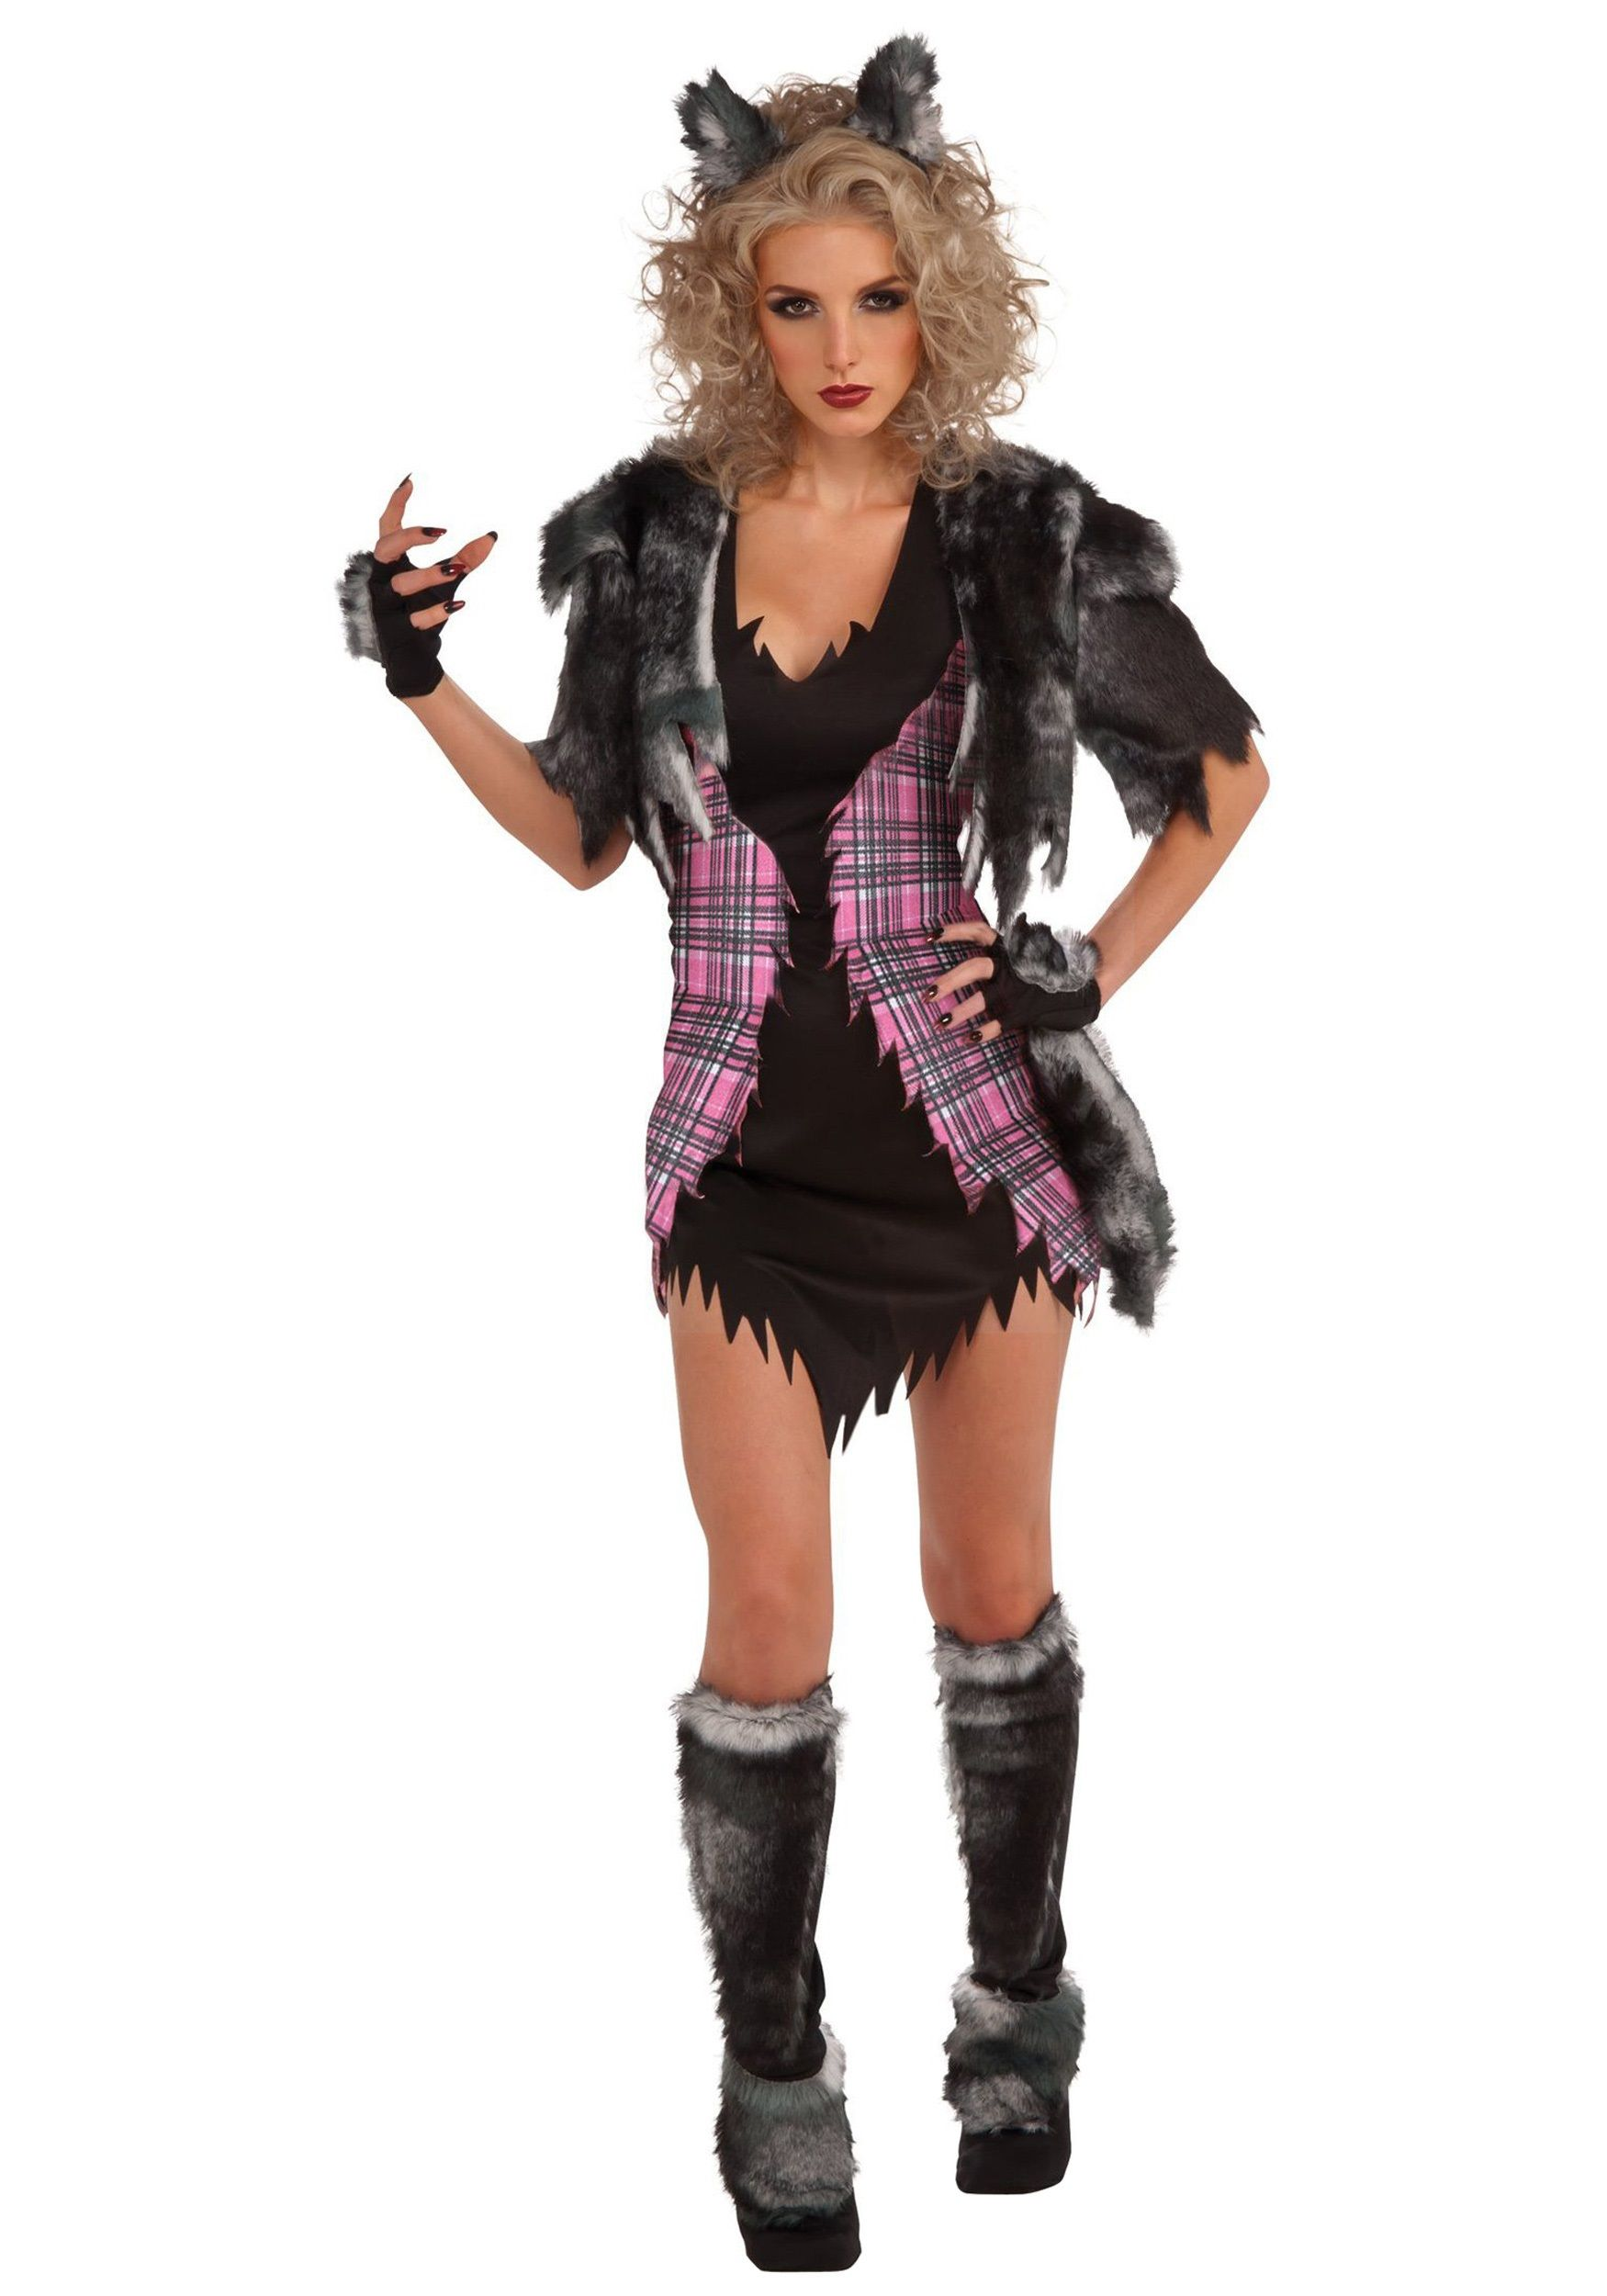 Scary Halloween Costumes for Women   Top Costume Idea Searches Scary ...